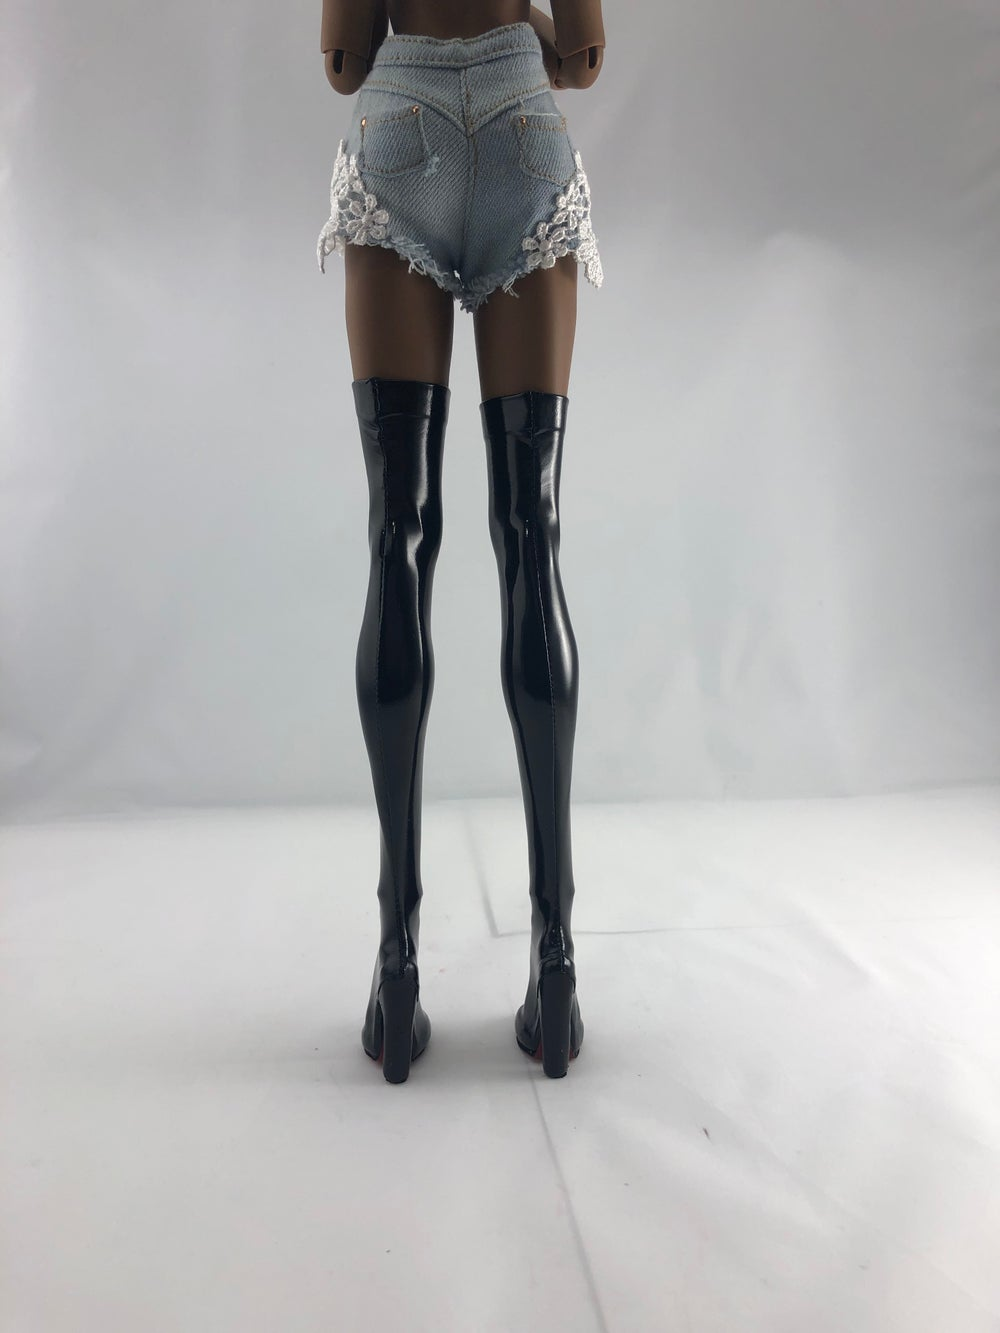 Black Patent Thigh High Boots Red Sole: Pidgin Doll